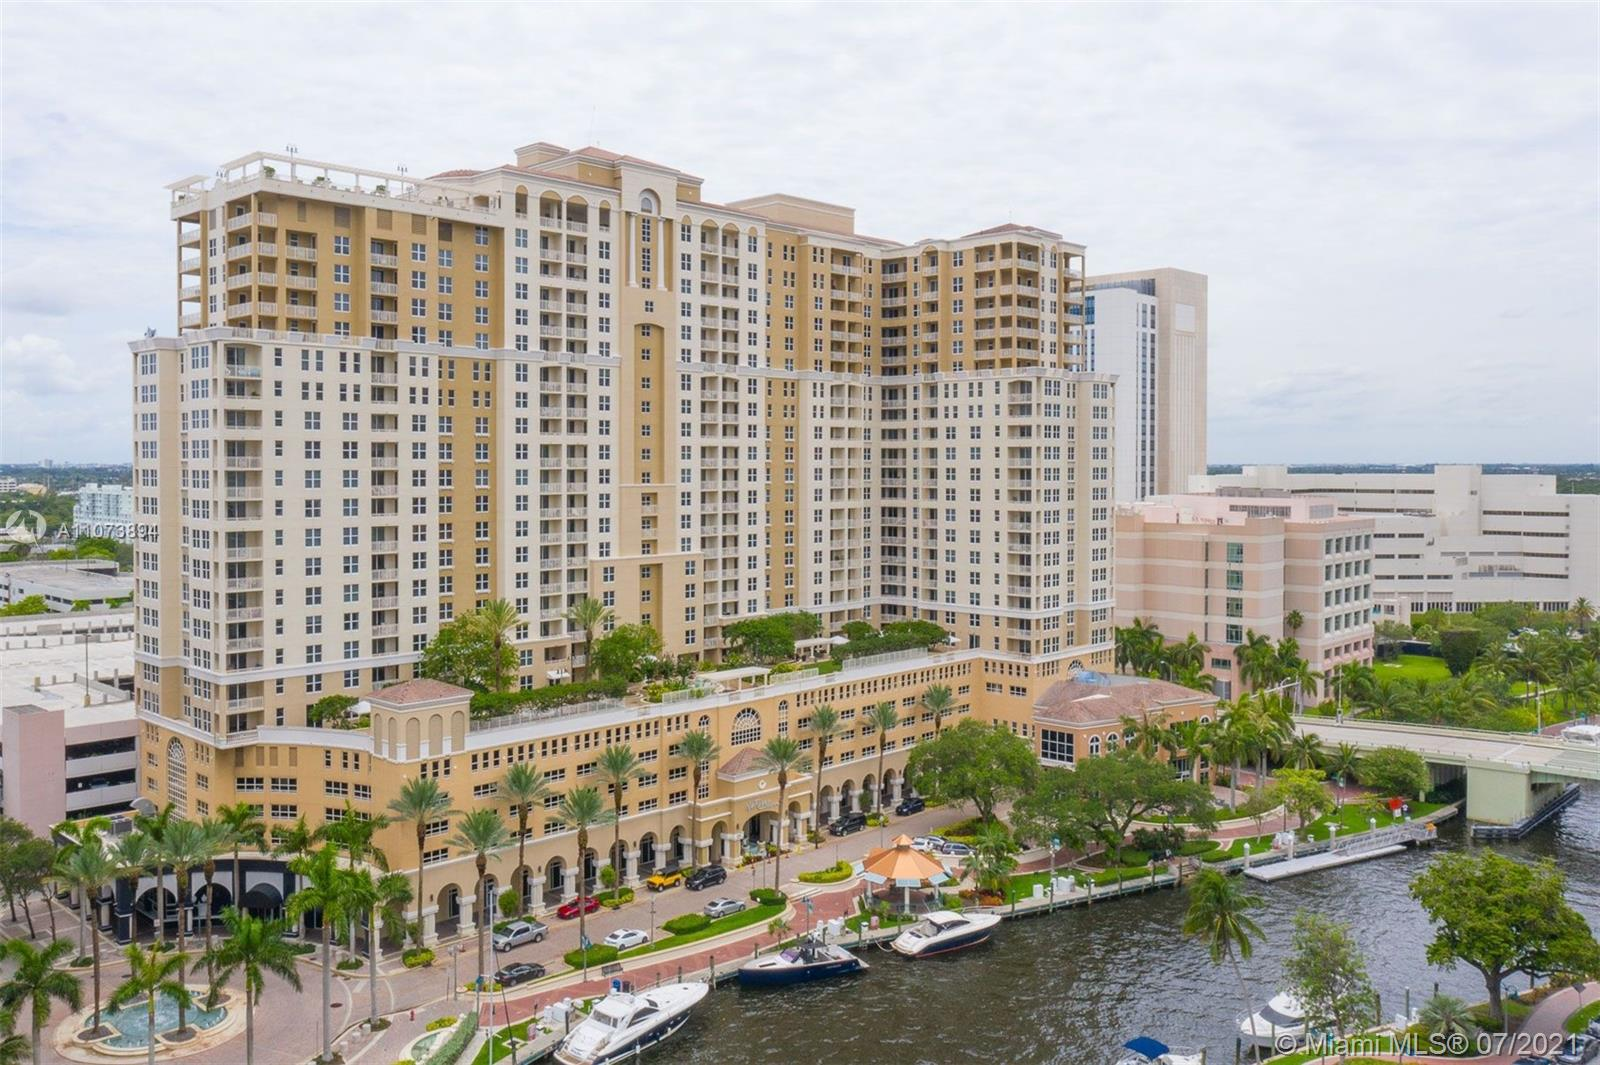 Fully furnished 2/2 split floor plan with 5 Star amenities in the heart of Downtown Fort Lauderdale. Roof top pool, business center and 2 story fitness center. Walking distance to Las Olas restaurants and shops. No utilities included.